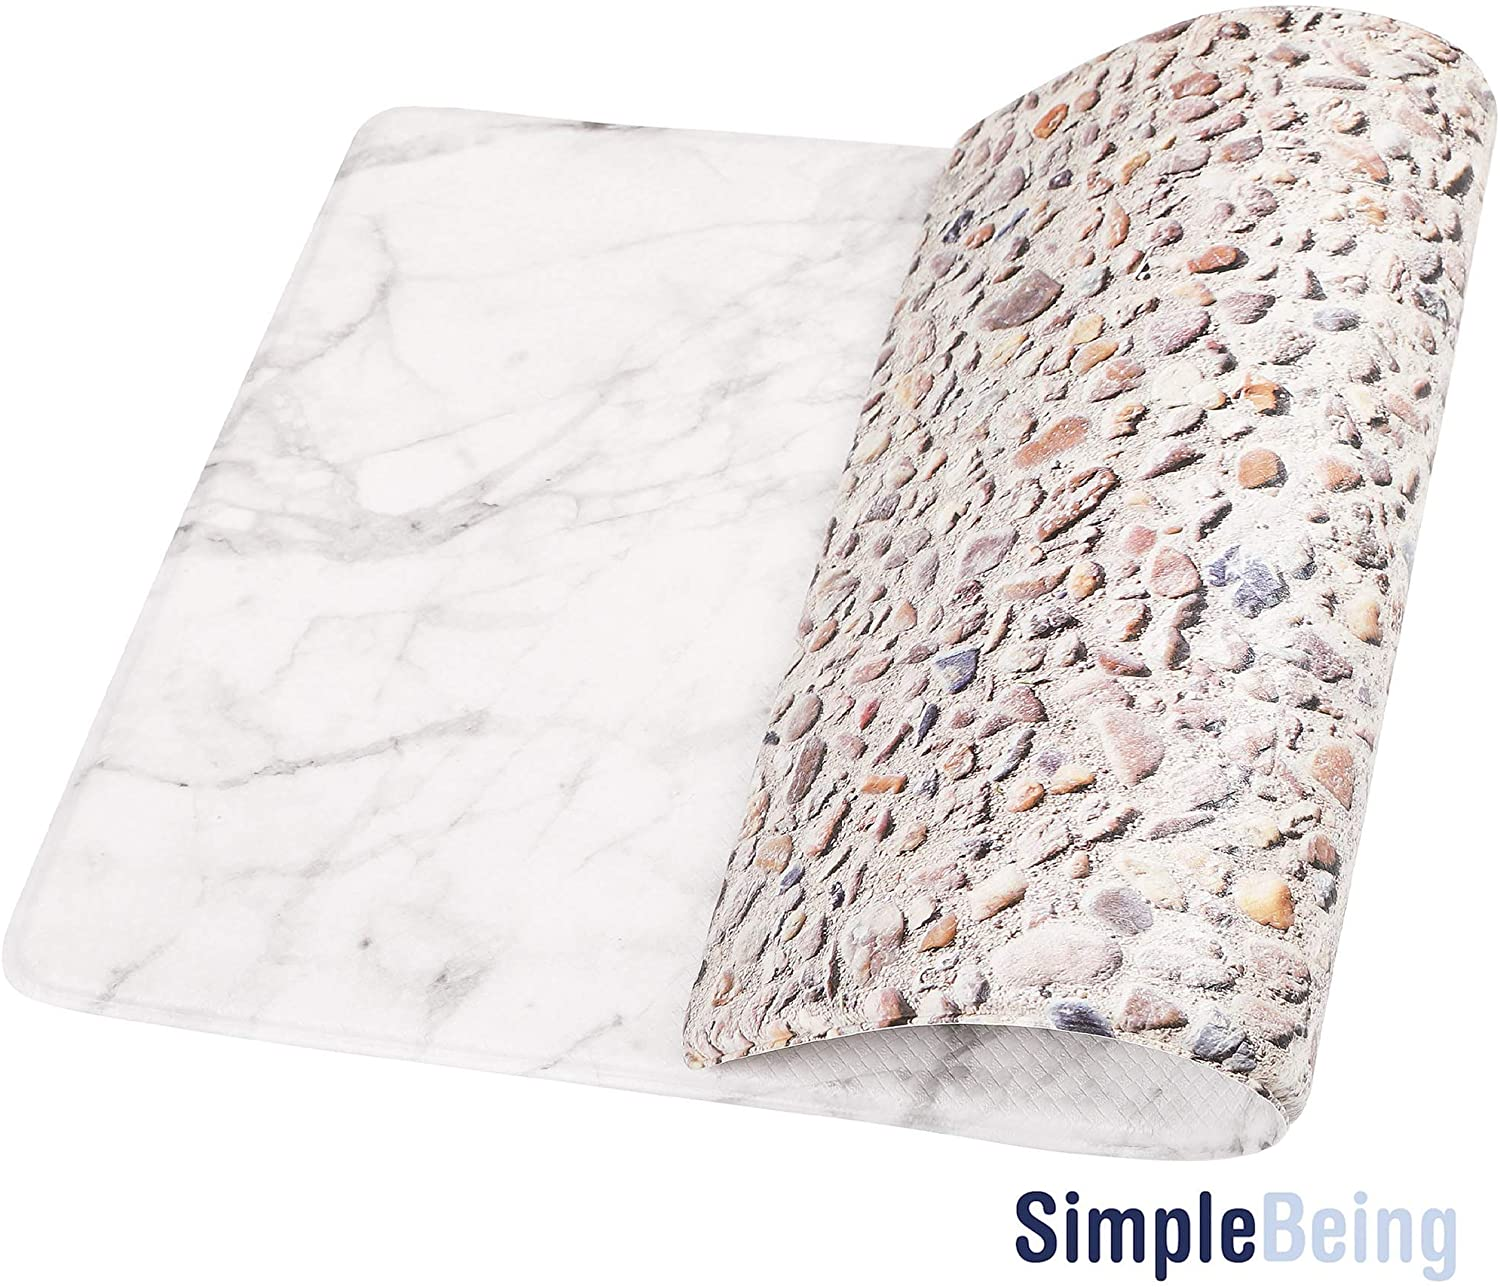 "Simple Being Marble Anti-Fatigue Kitchen Floor Mat (32"" x 17.5"")"